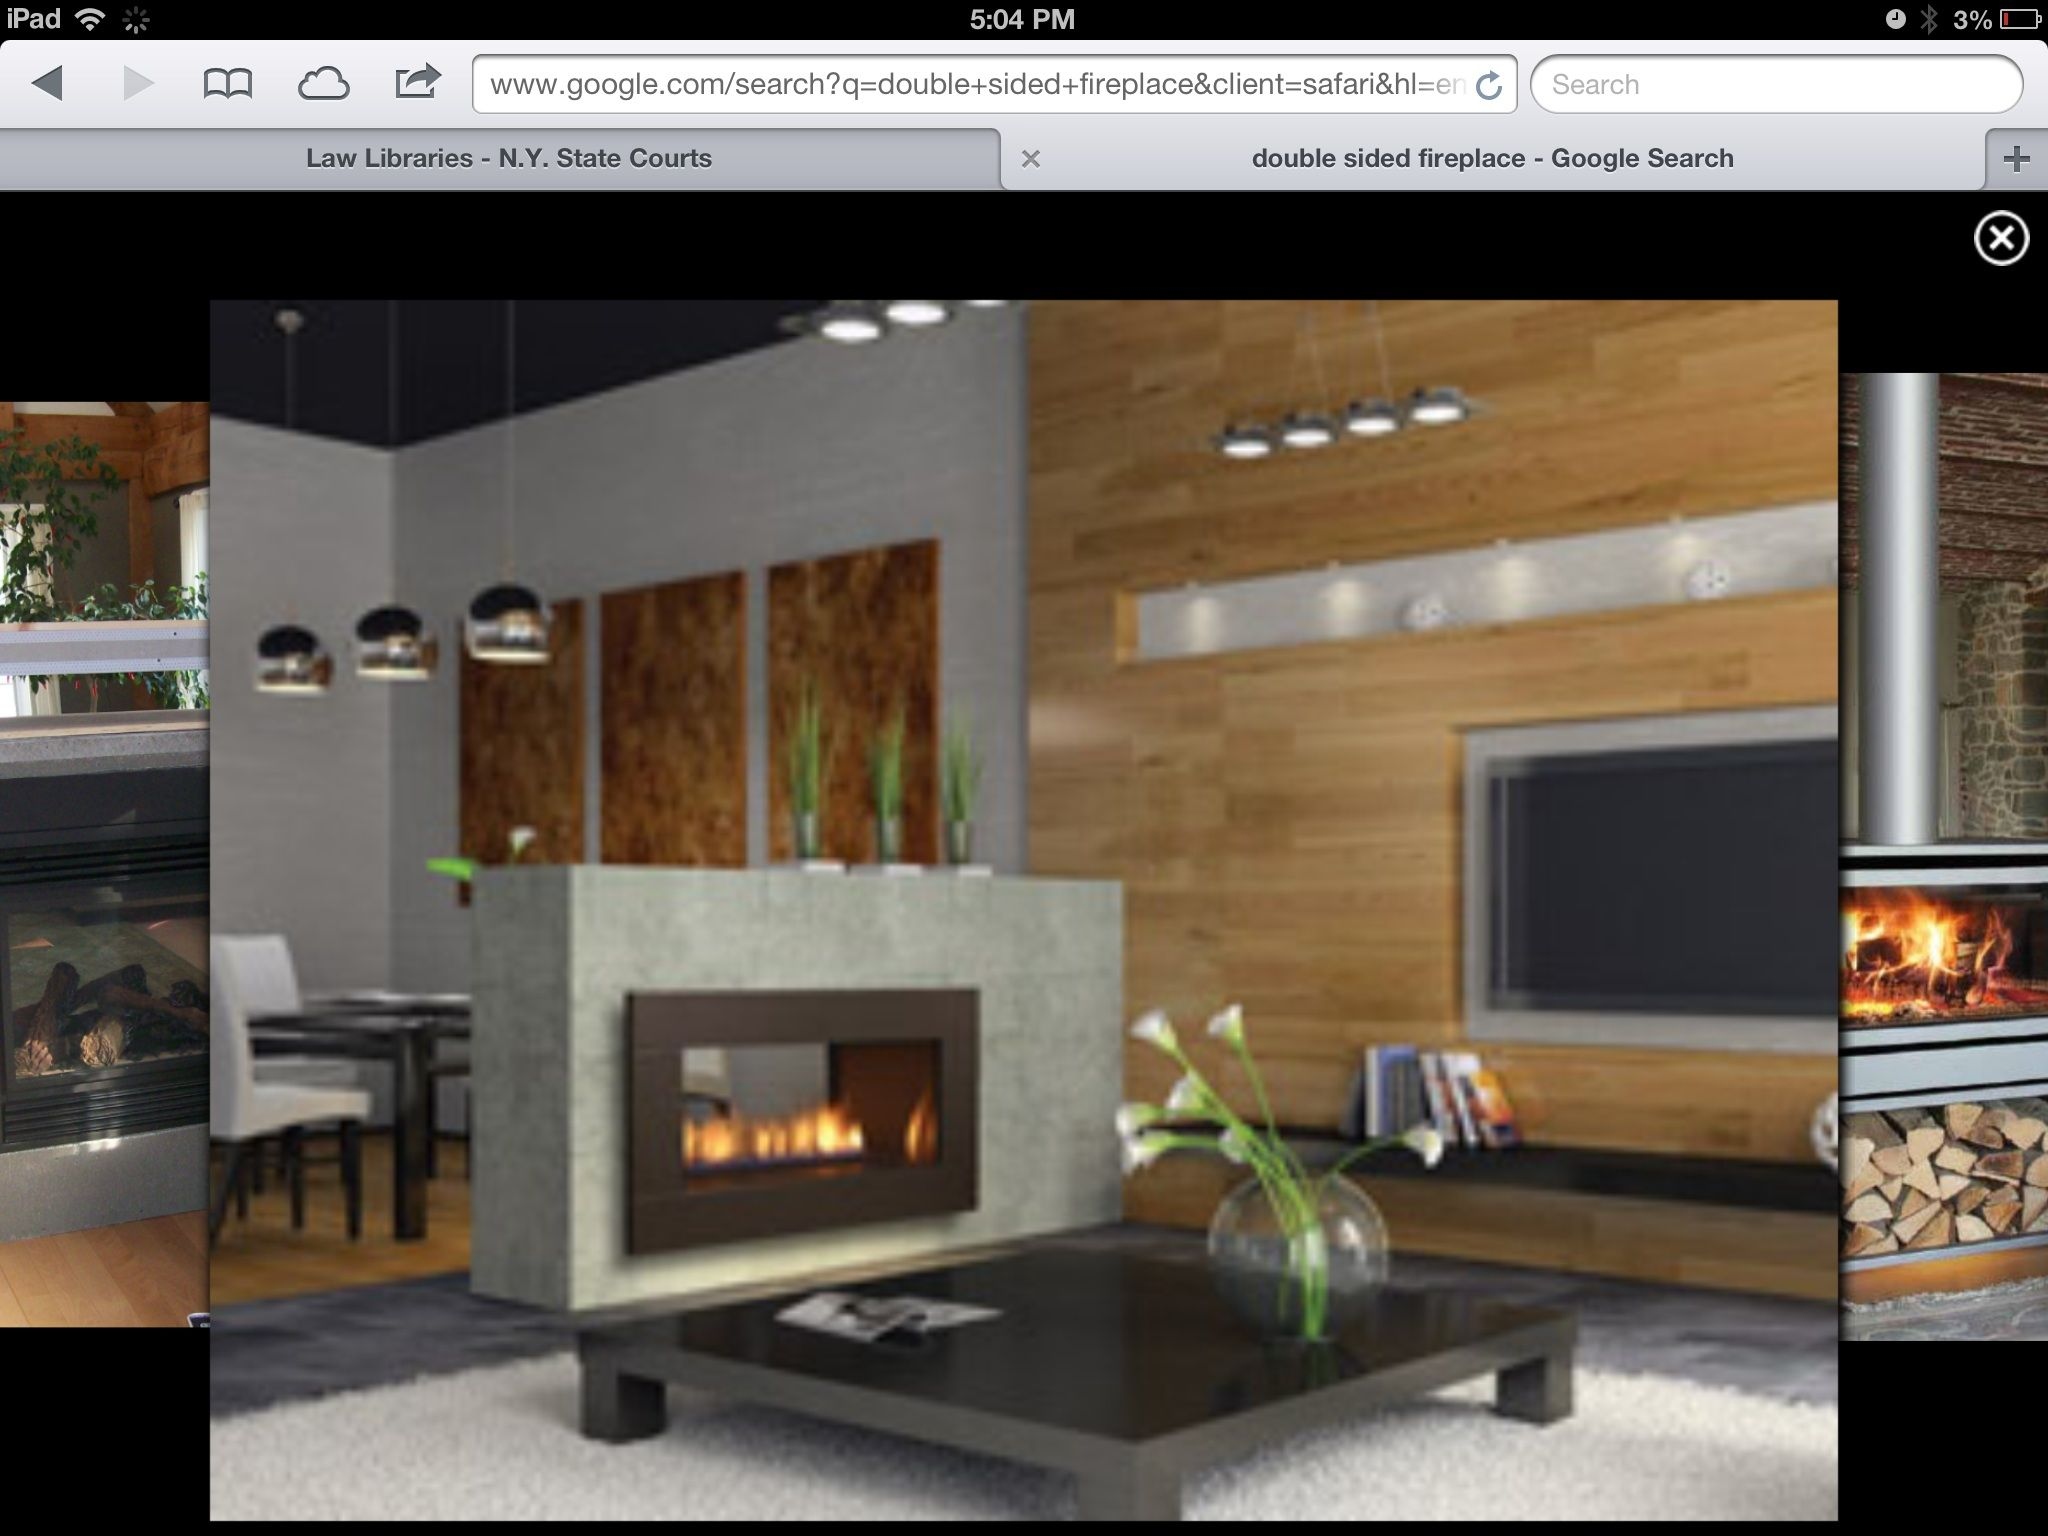 Decoration : Contemporary Gas Wall Fireplace Design With Wood Gas Fireplaces  Modern to Show Stunning Looks of Real Wood Contemporary Fireplace Ventless  ...